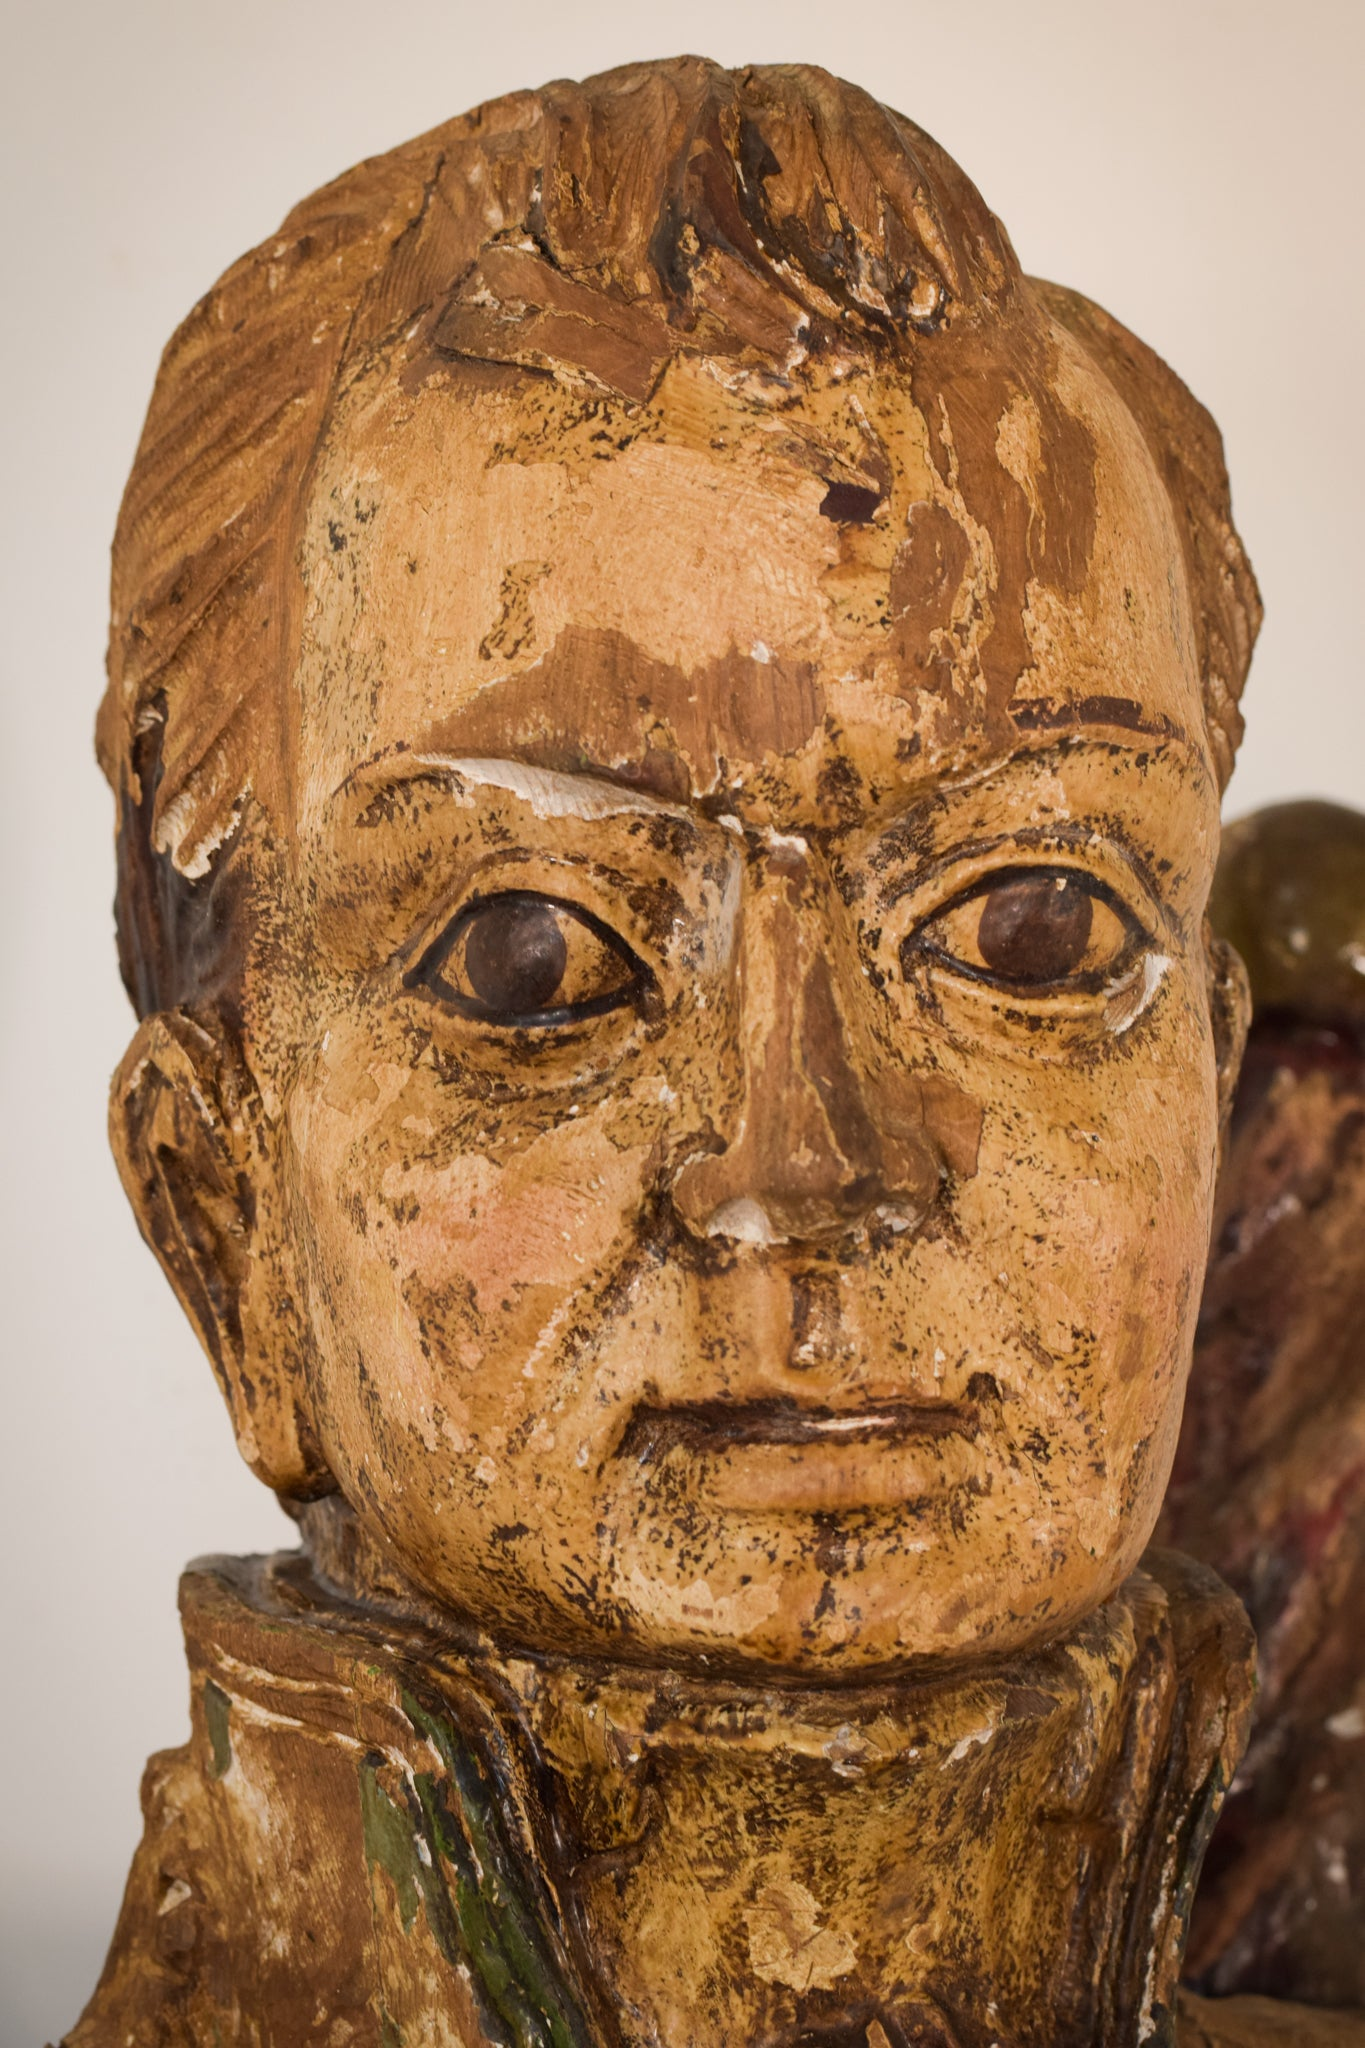 Large Polychromed Carved Wooden Figure in the form of a ships officer or admiral rank figurehead